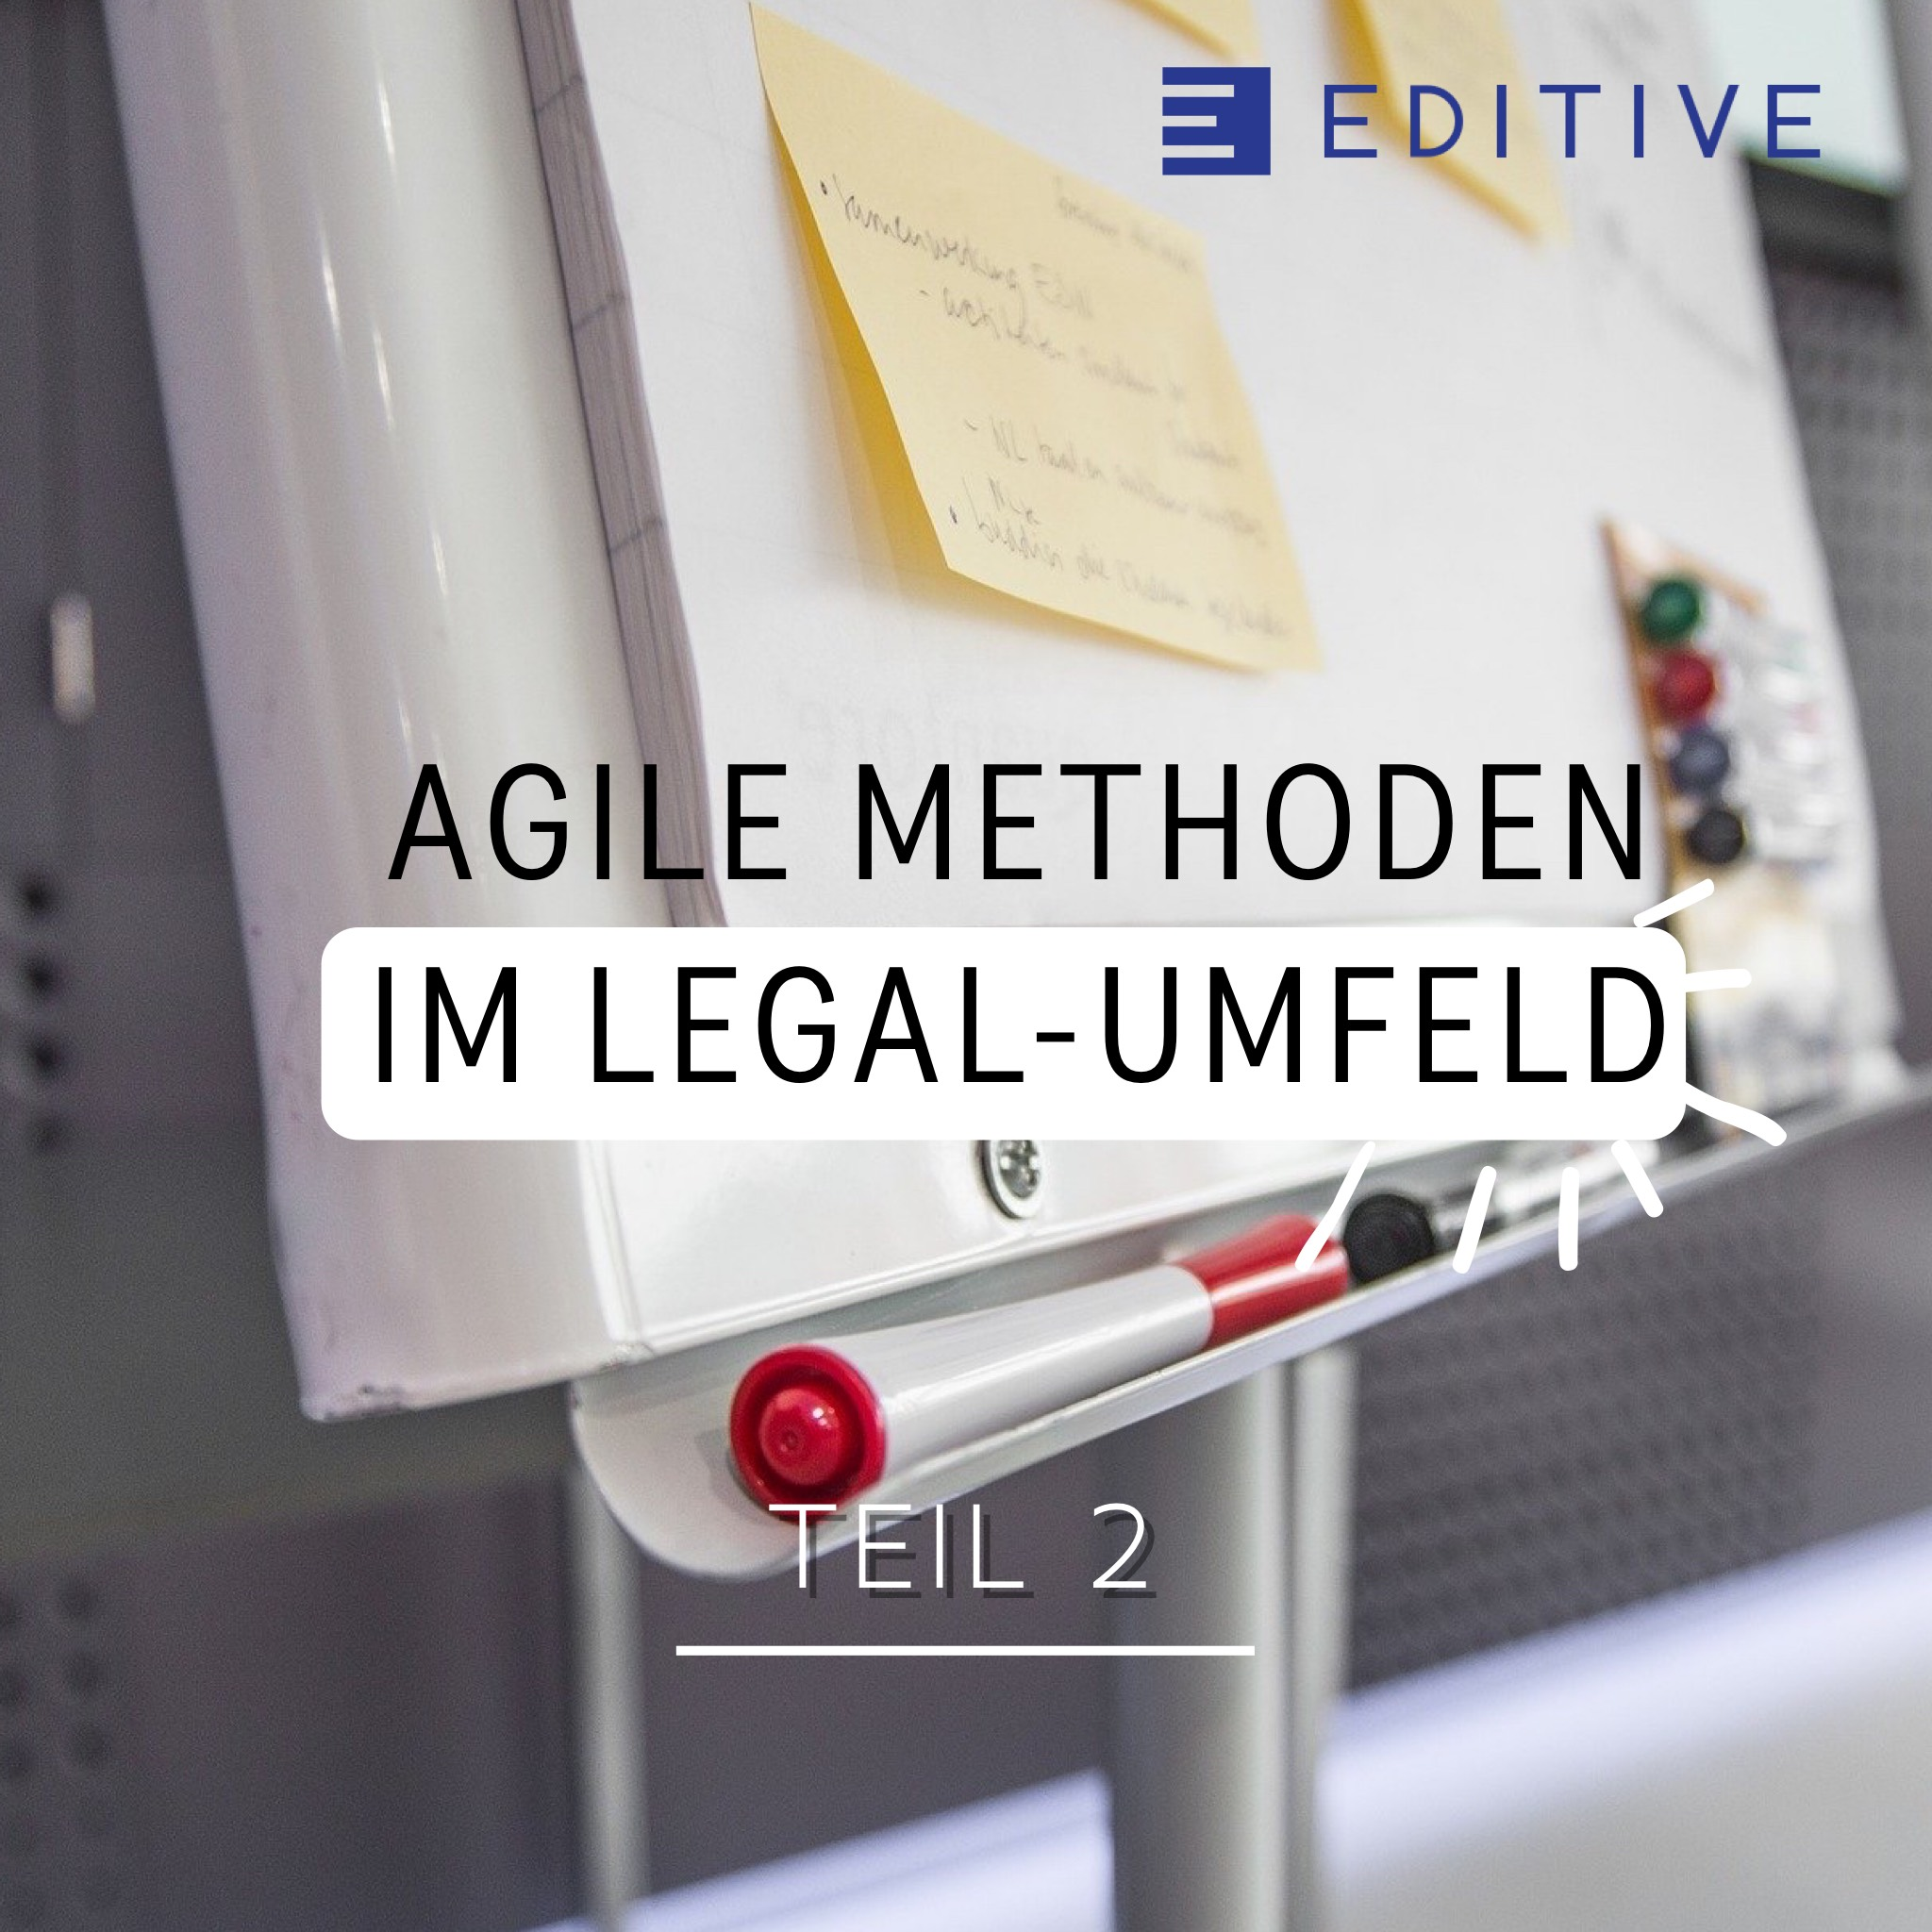 Agilität Scrum Kanban Board EDITIVE Legal Tech Umfeld Design